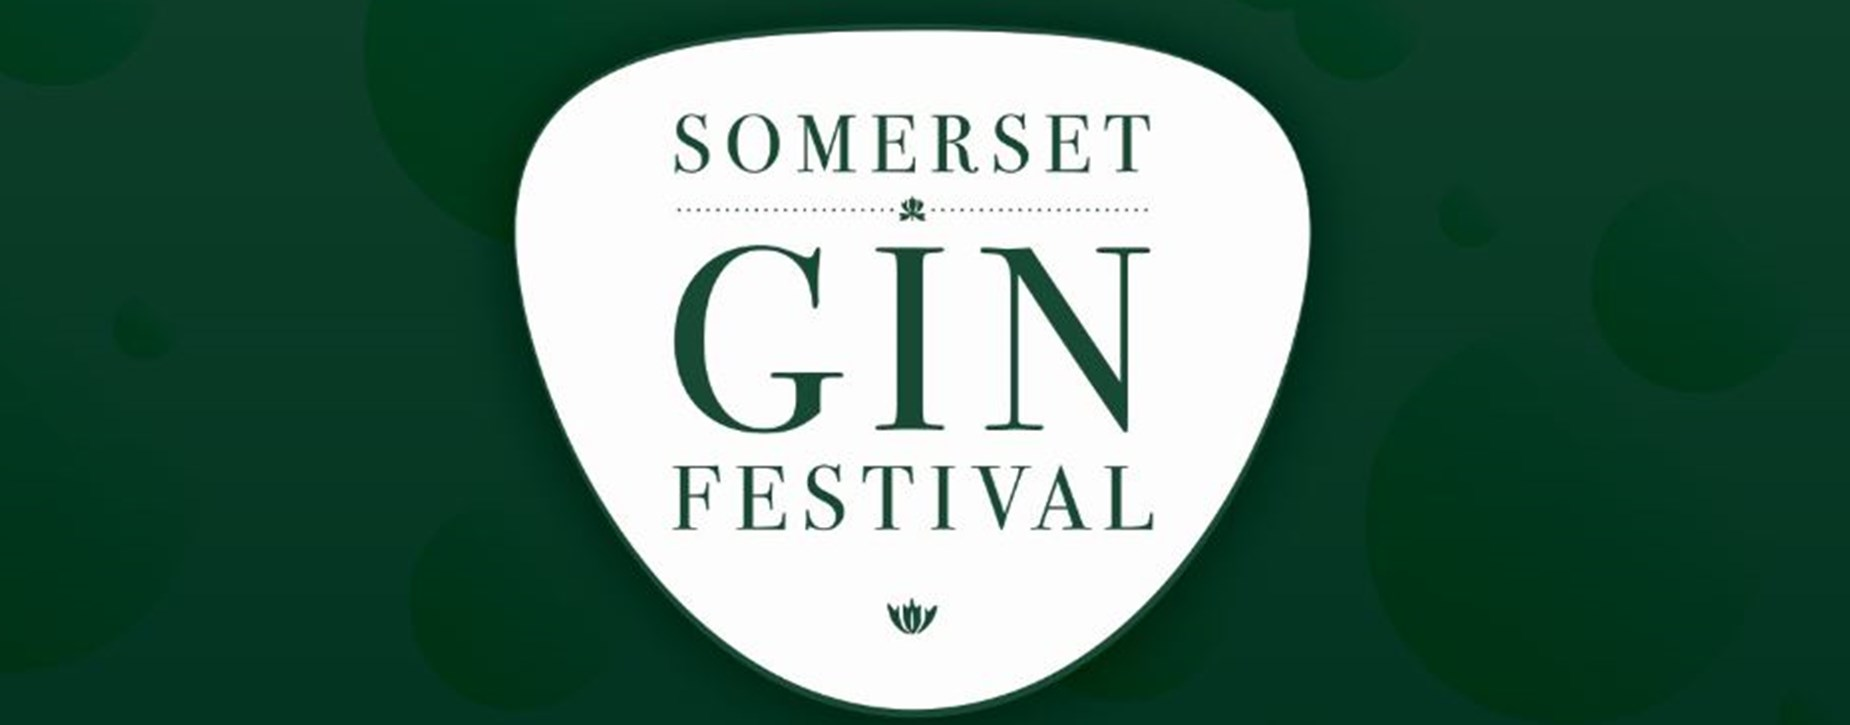 Weekend Ticket: Somerset Gin Festival 2018